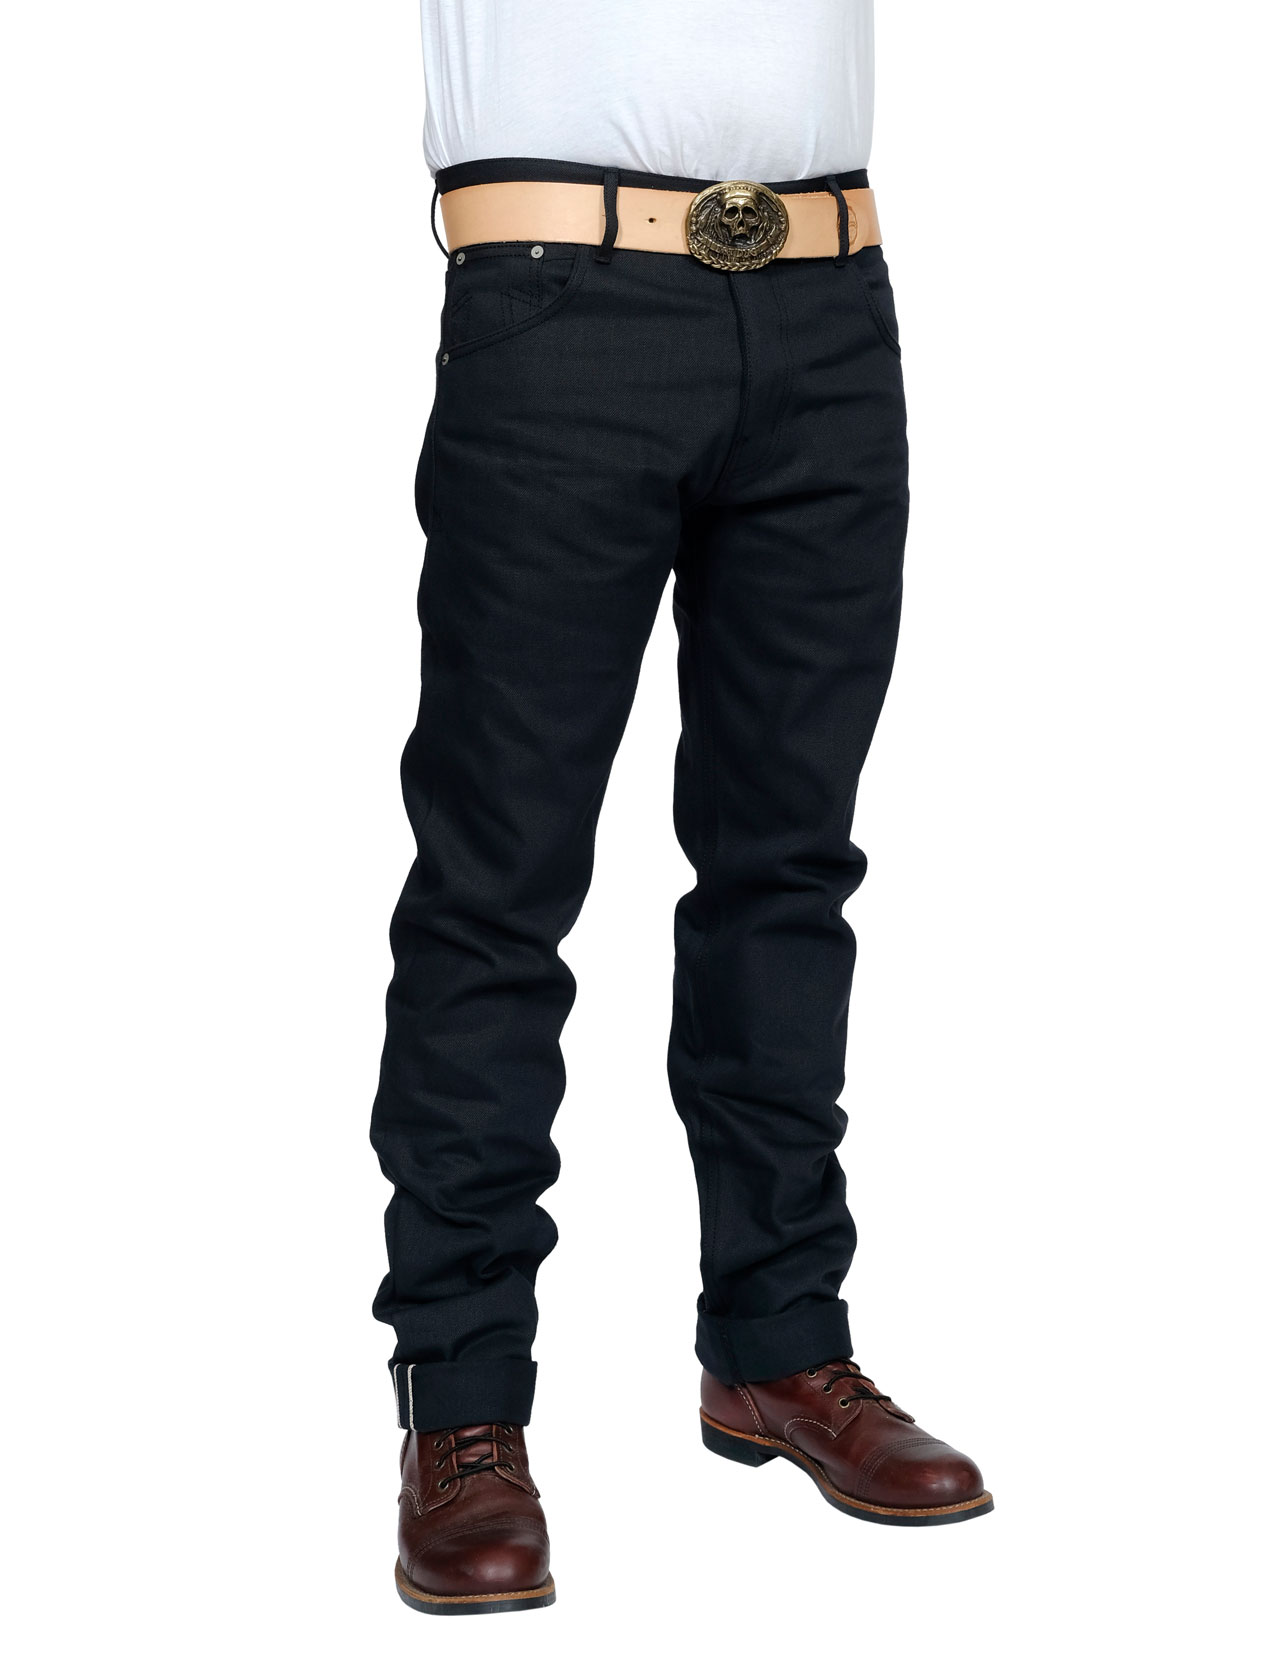 Eat Dust - Fit 76 Bloodline Raw Selvage Jeans - Black 14 oz